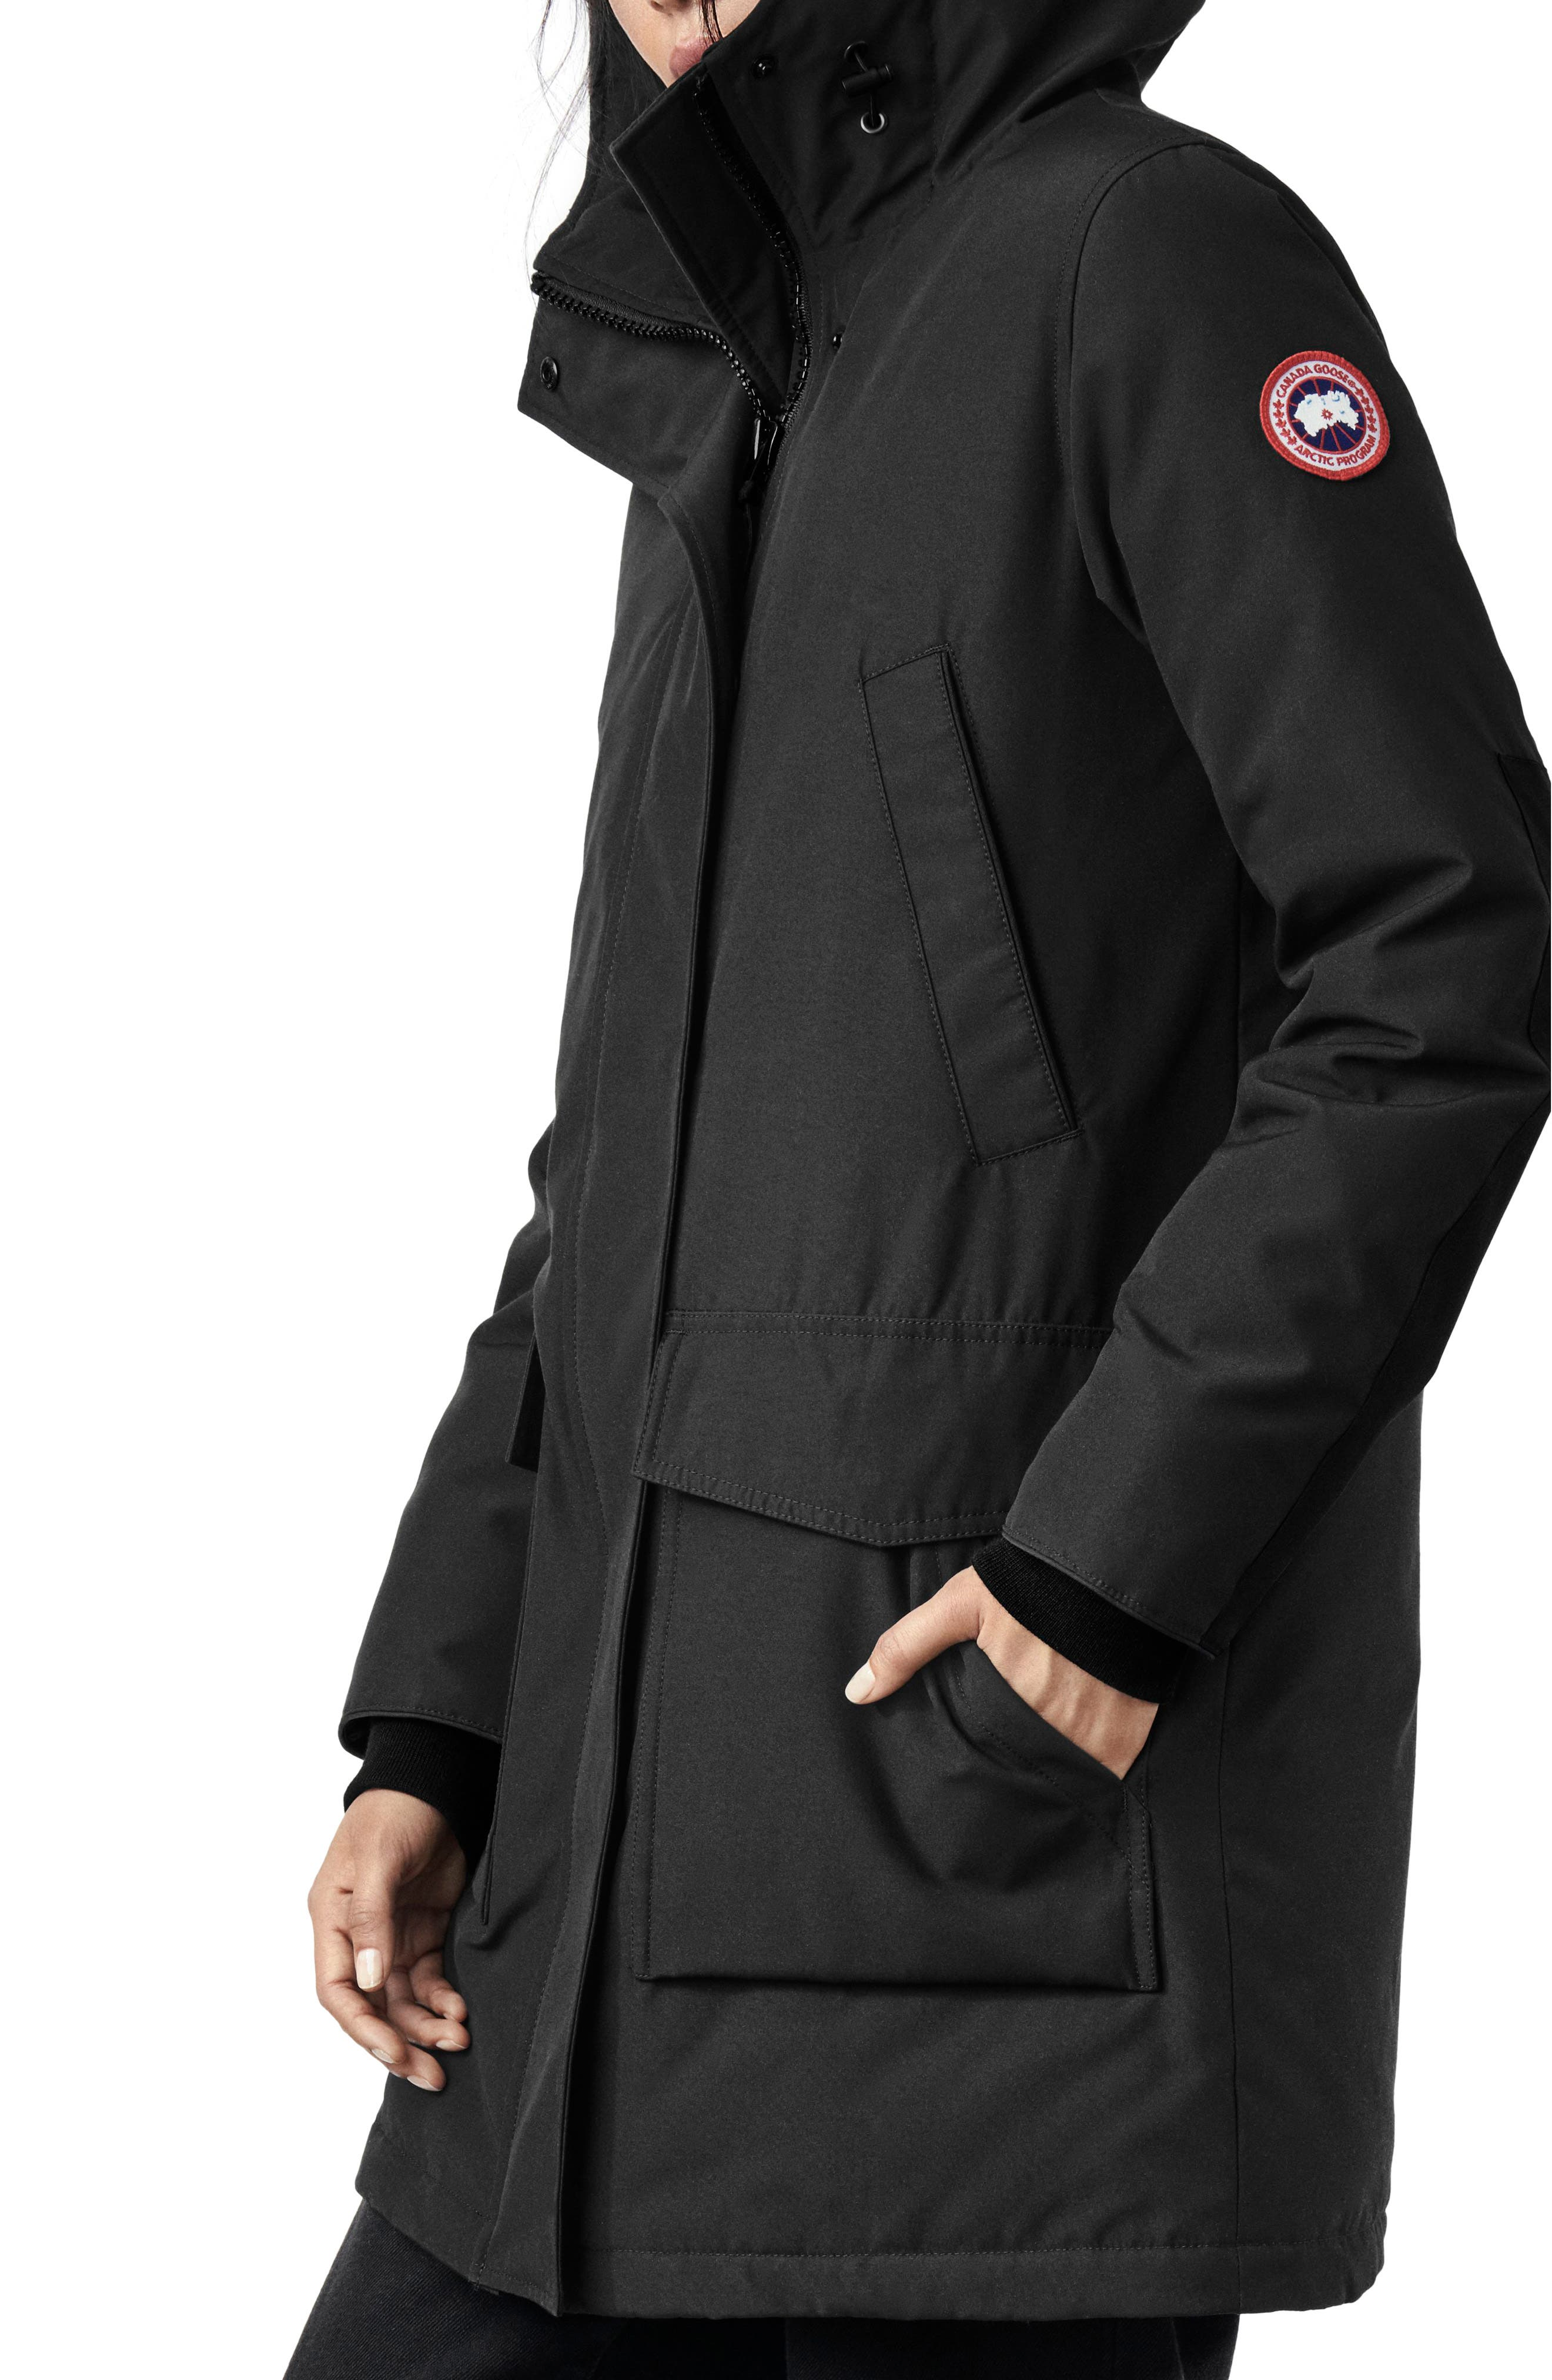 CANADA GOOSE, Canmore 625 Fill Power Down Parka, Alternate thumbnail 2, color, BLACK